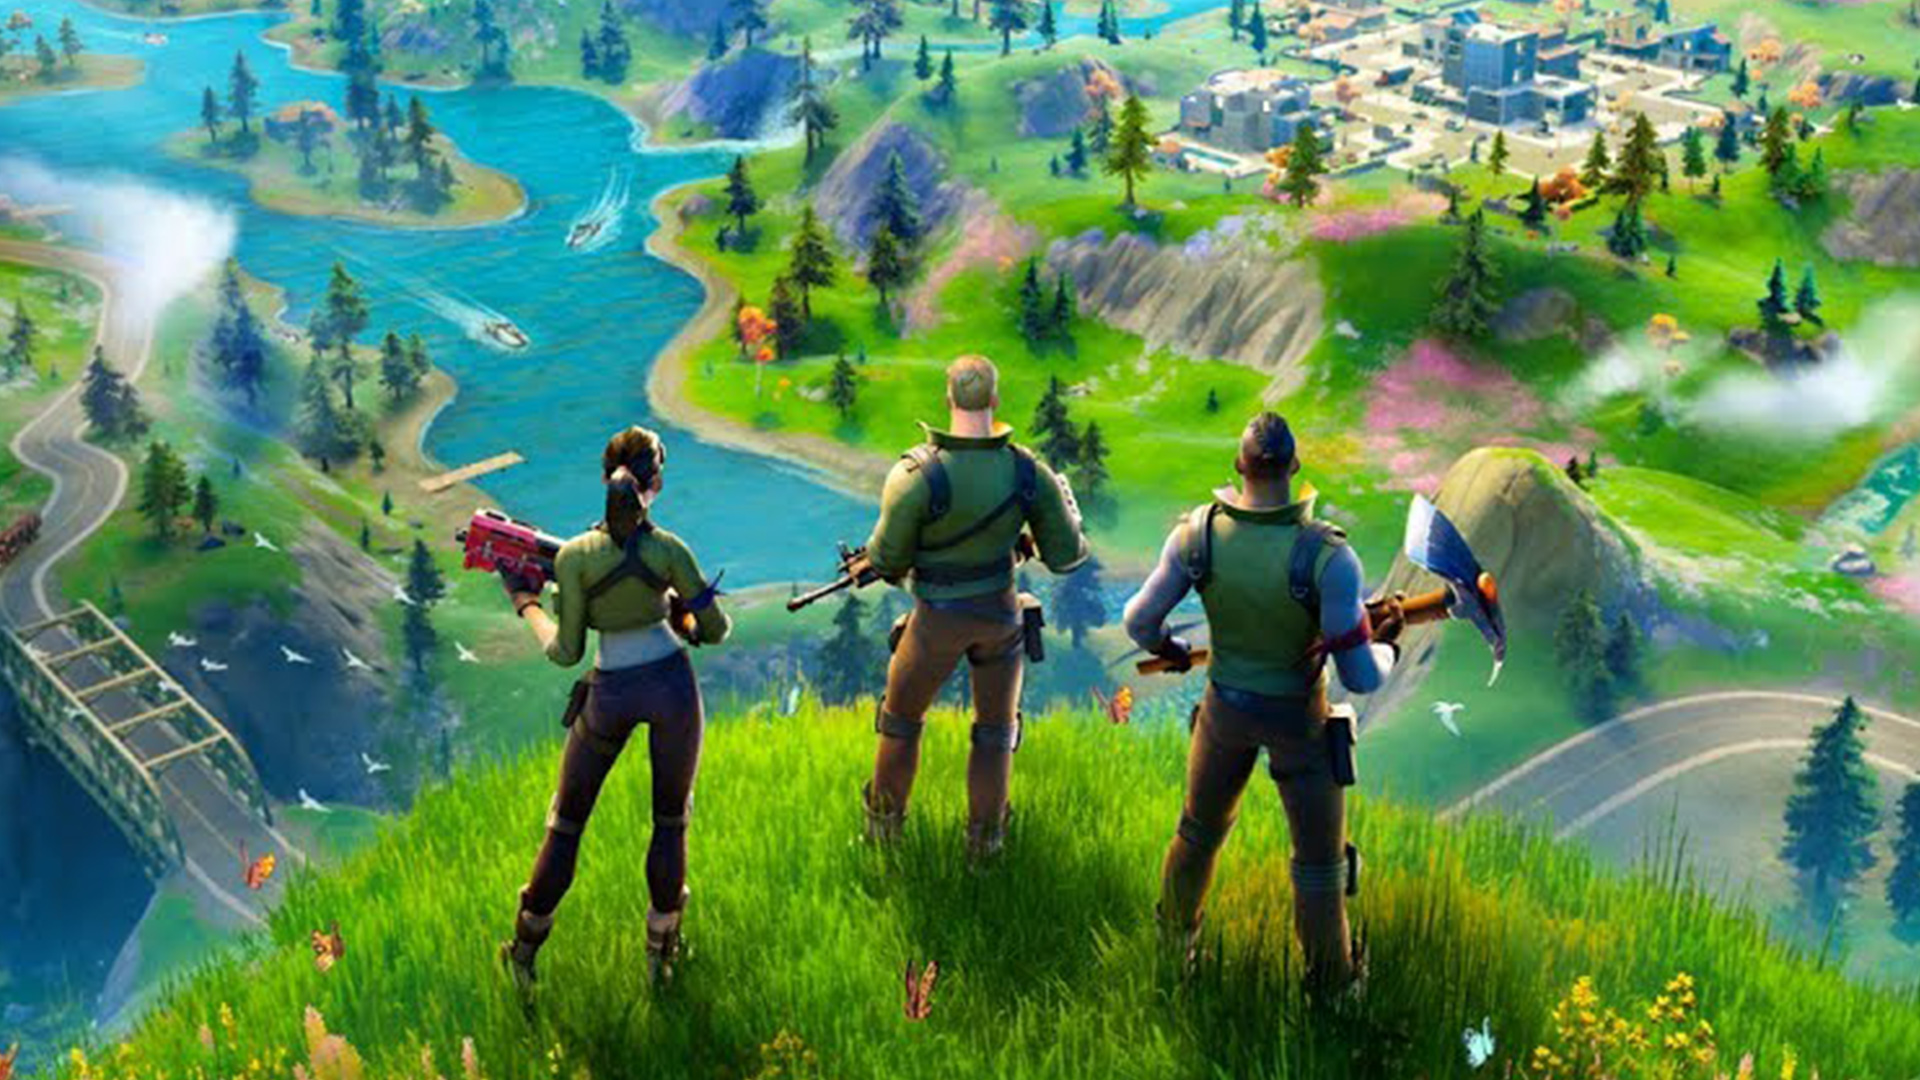 Epic Sues Fortnite Tester For Spoiling The Suspense With